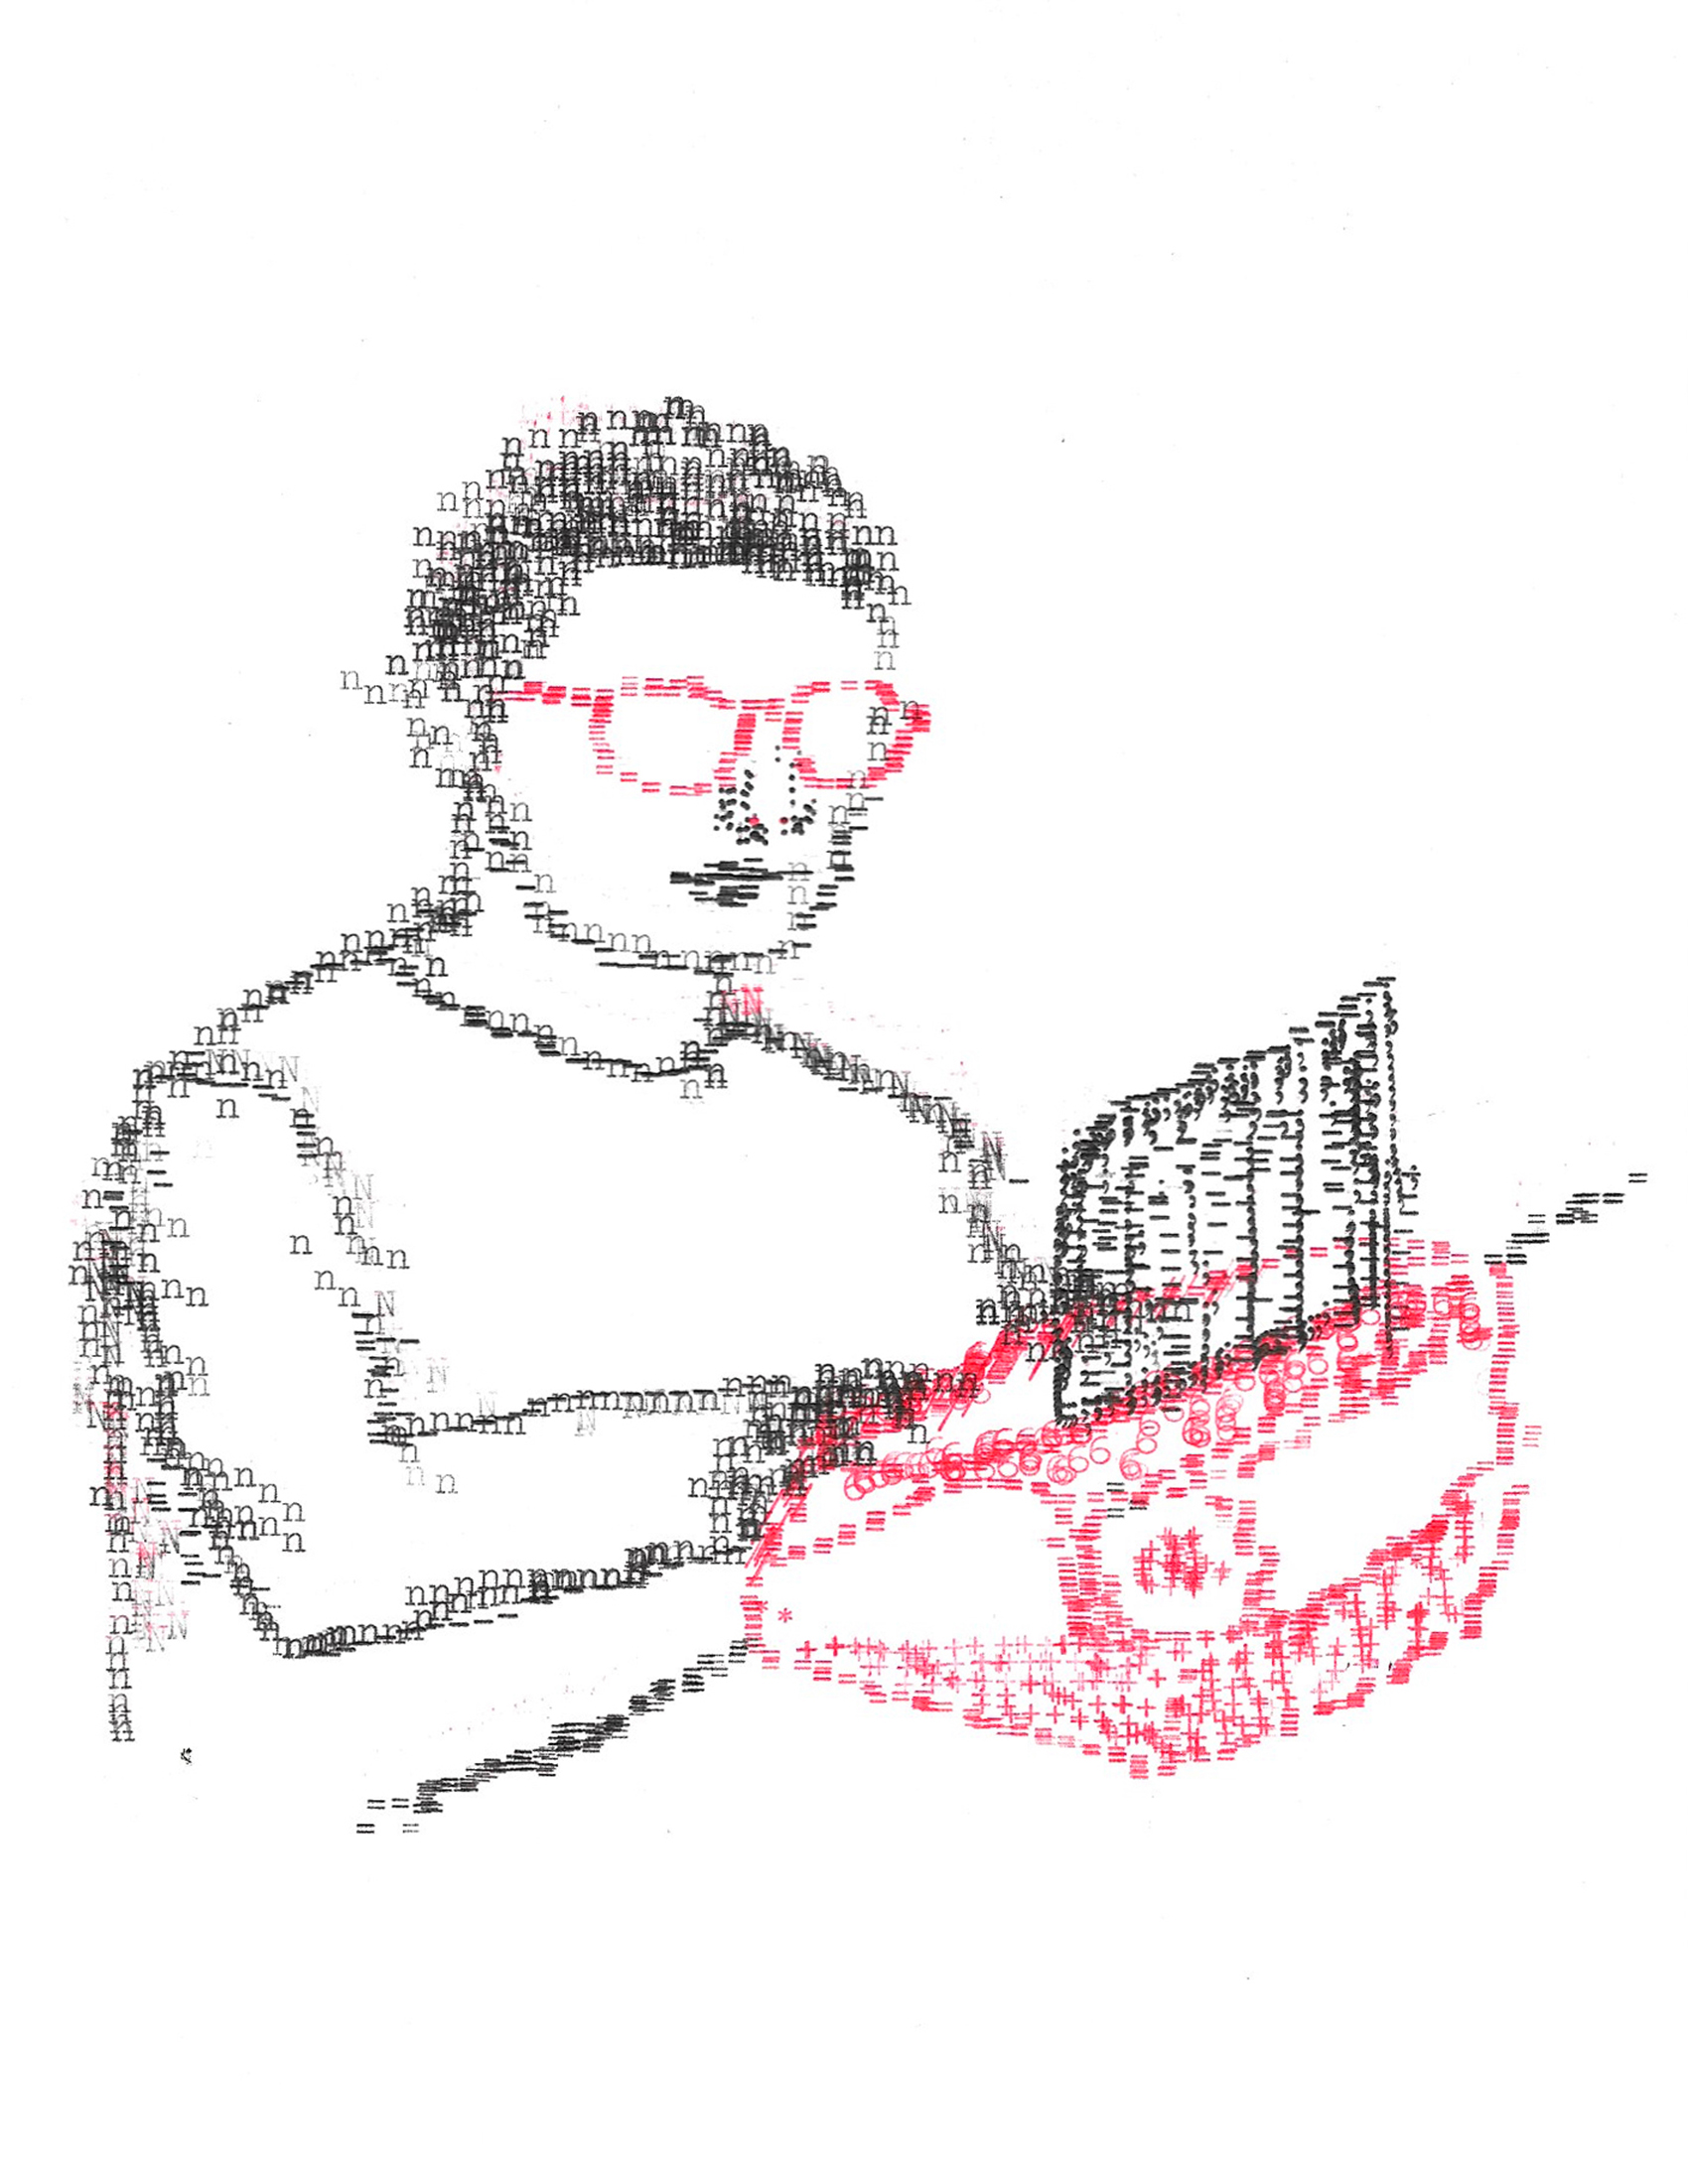 Self Portrait (Nutthawut Siridejchai), 2019, Typewriter Drawing, 8 x 10 inches